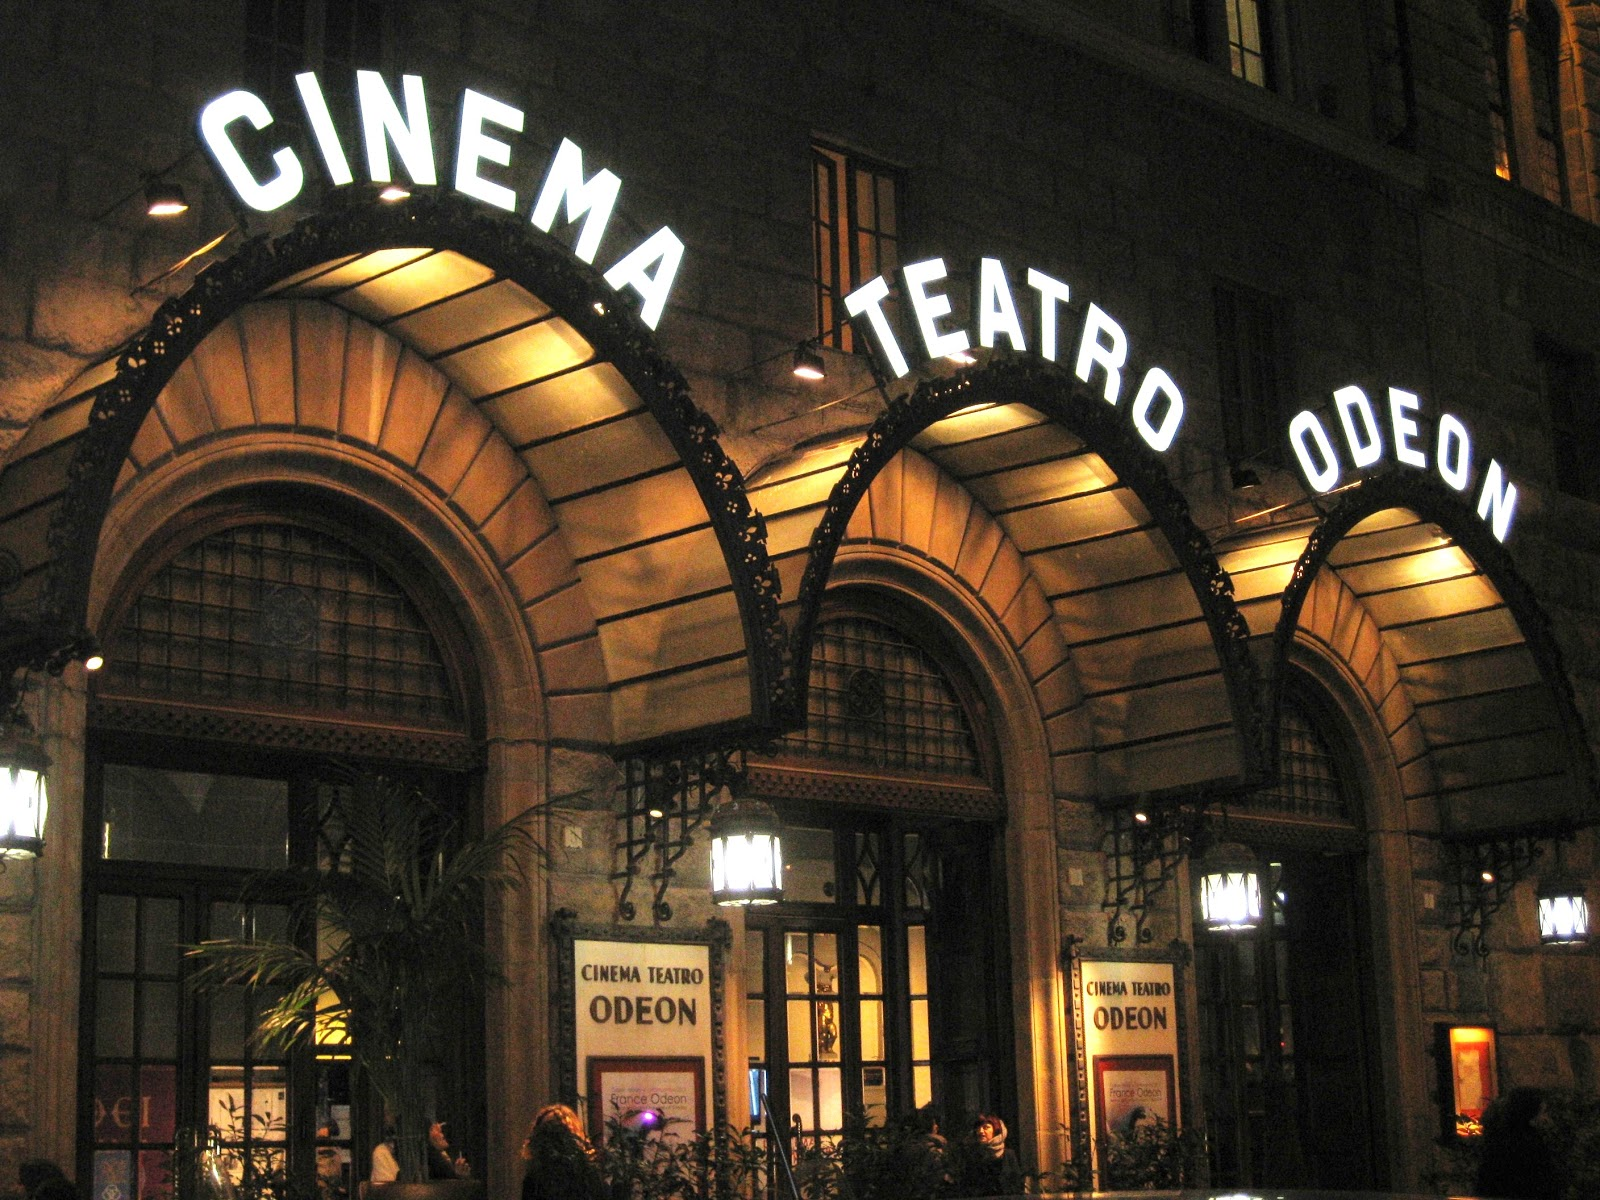 cinema odeon, toc toc firenze